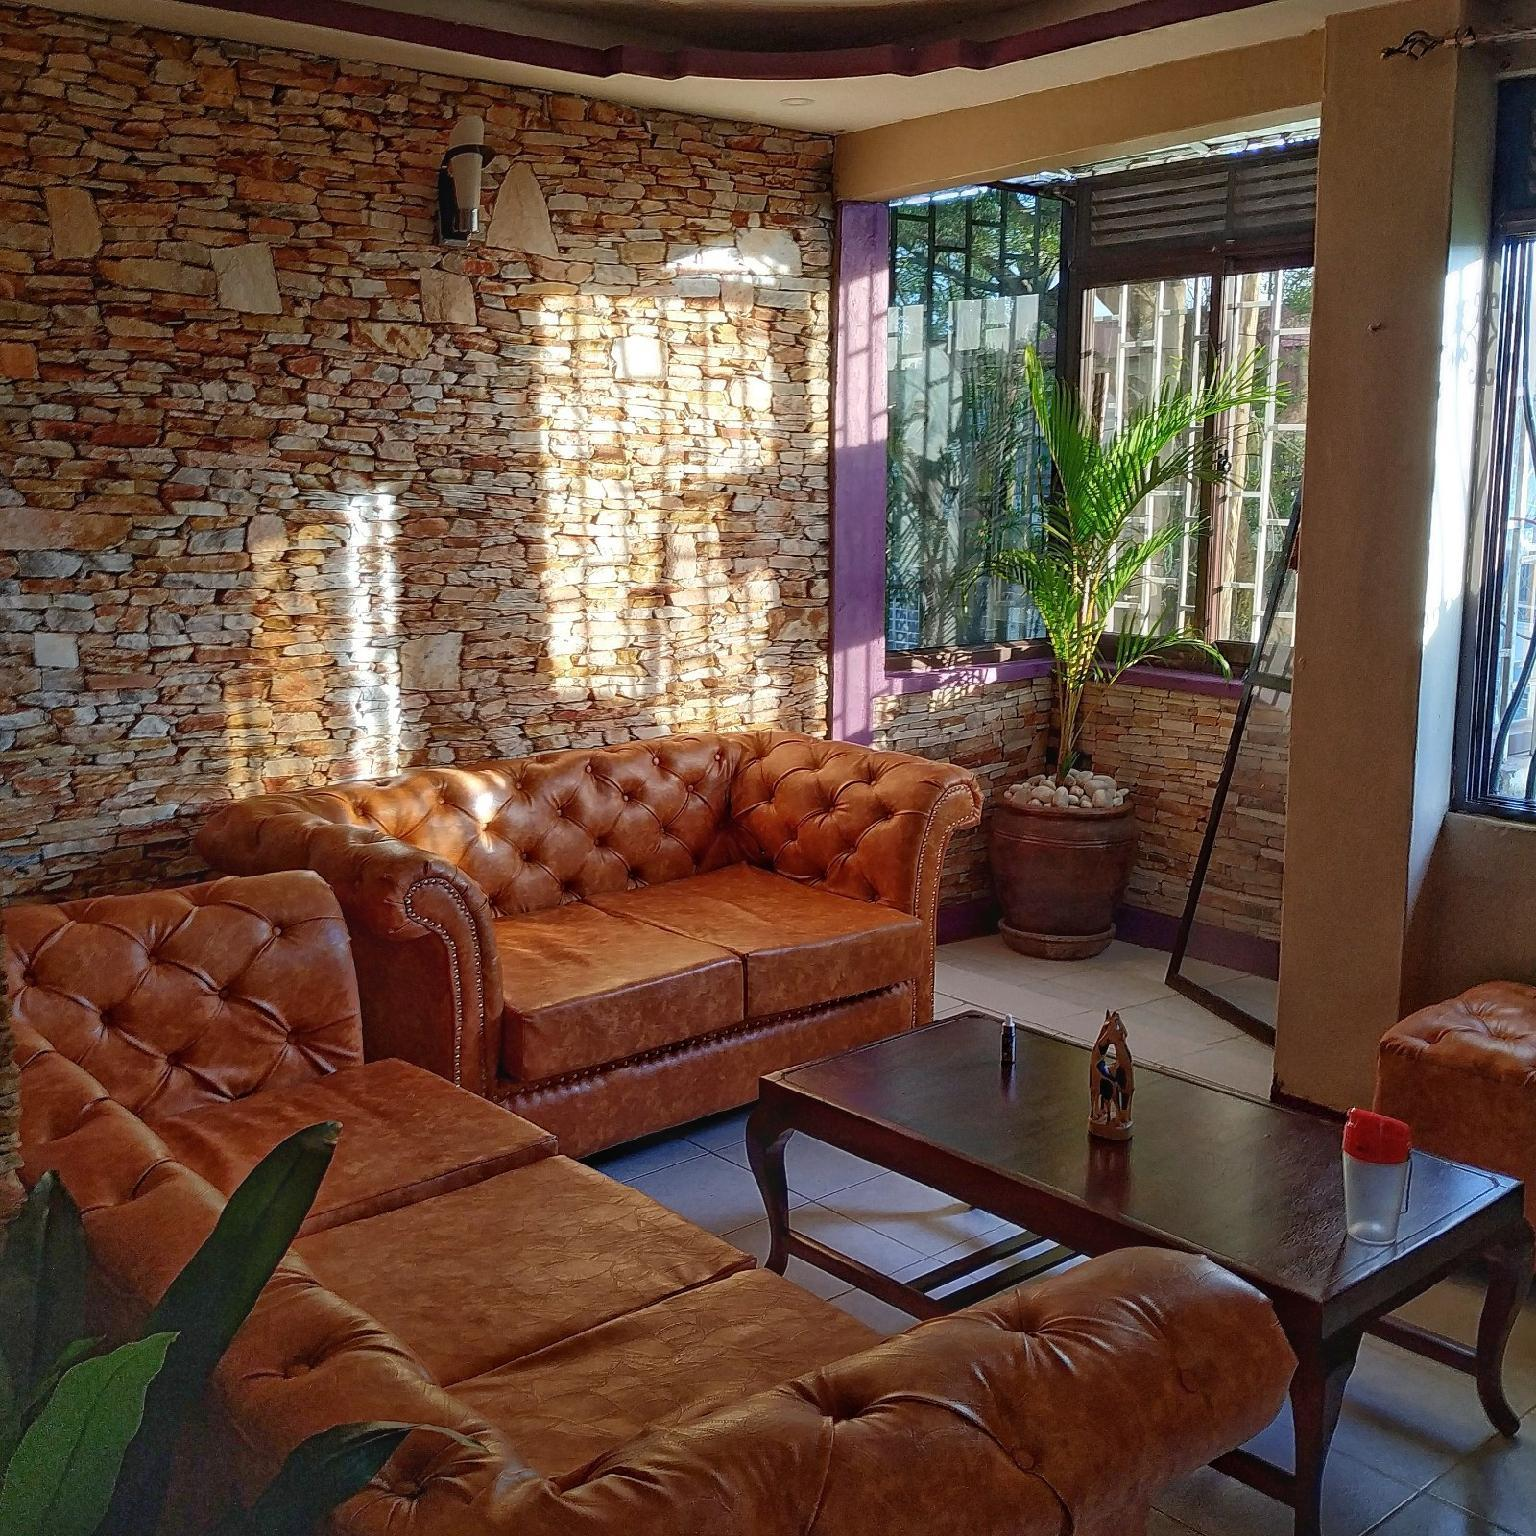 Thelle 2 Bedroomed Apartment In The City